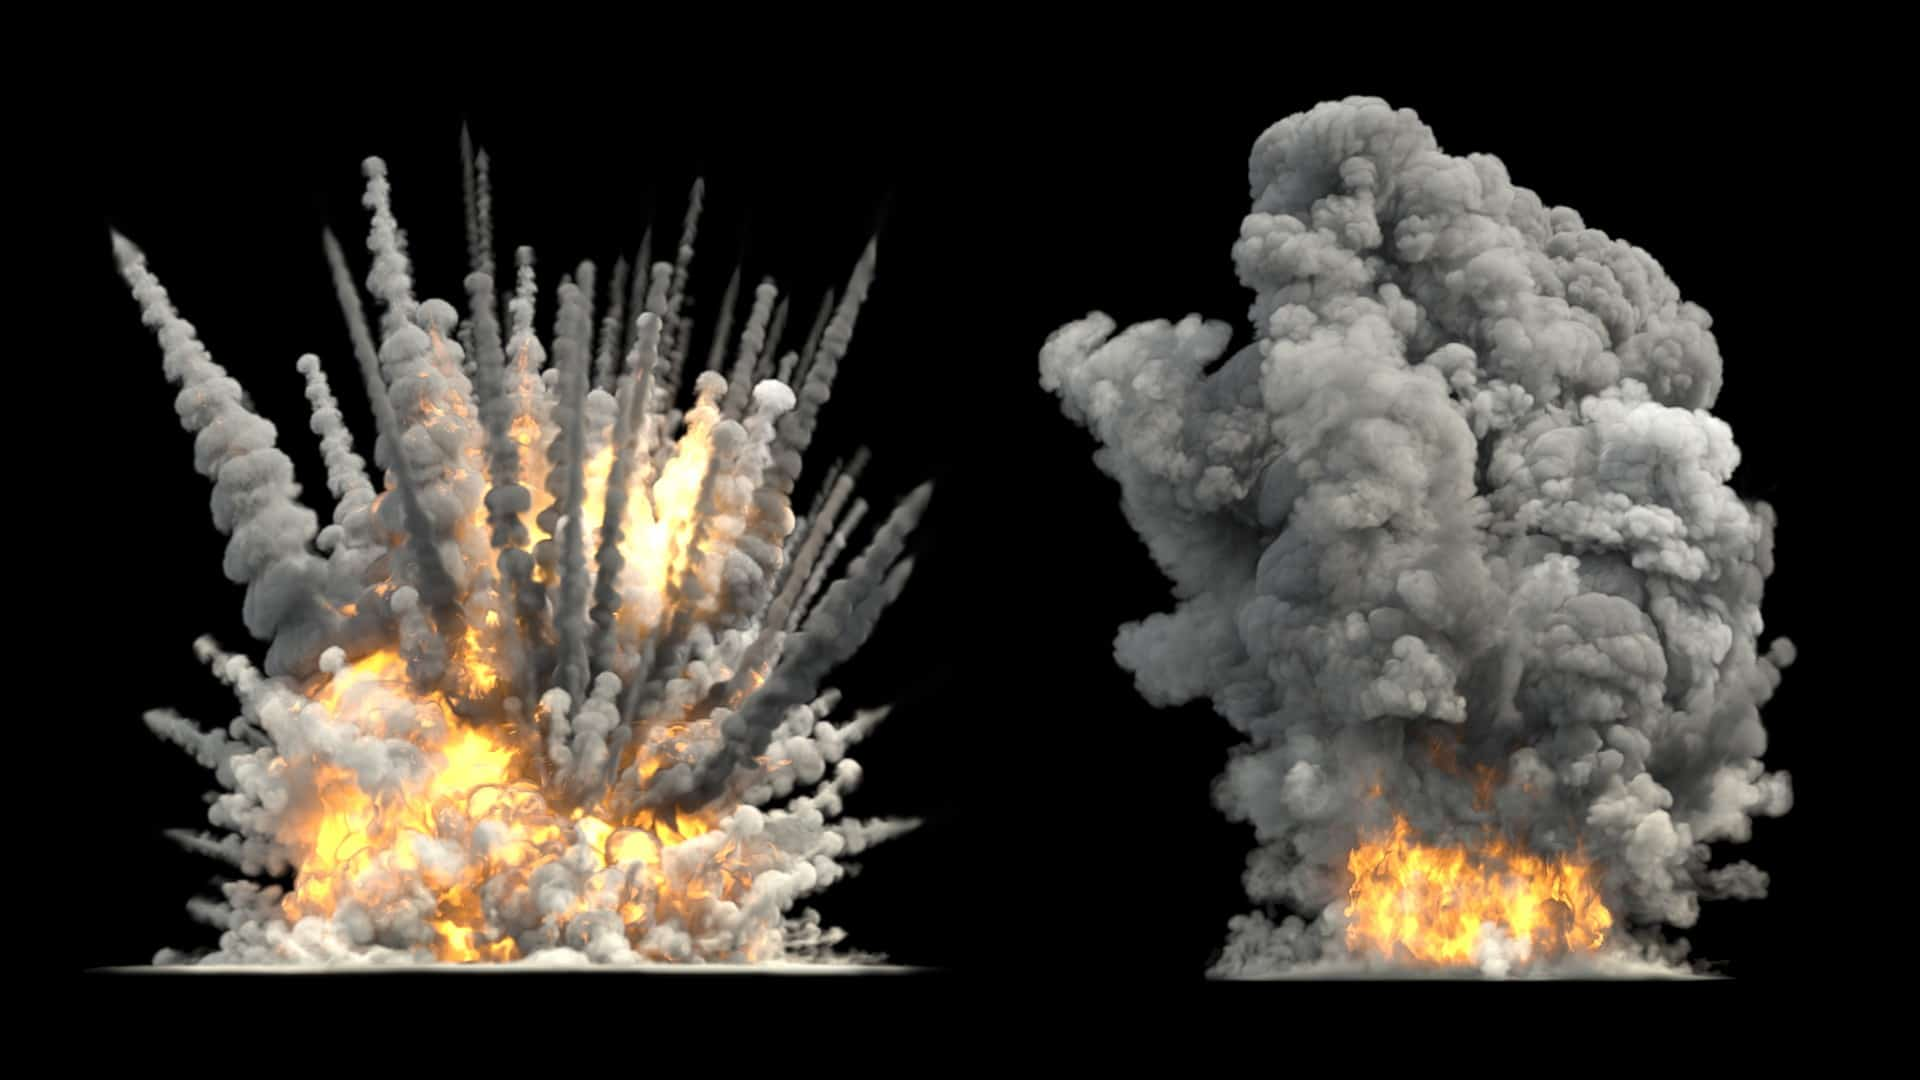 Exploding asx mining share price represented by two bomb blasts on black background